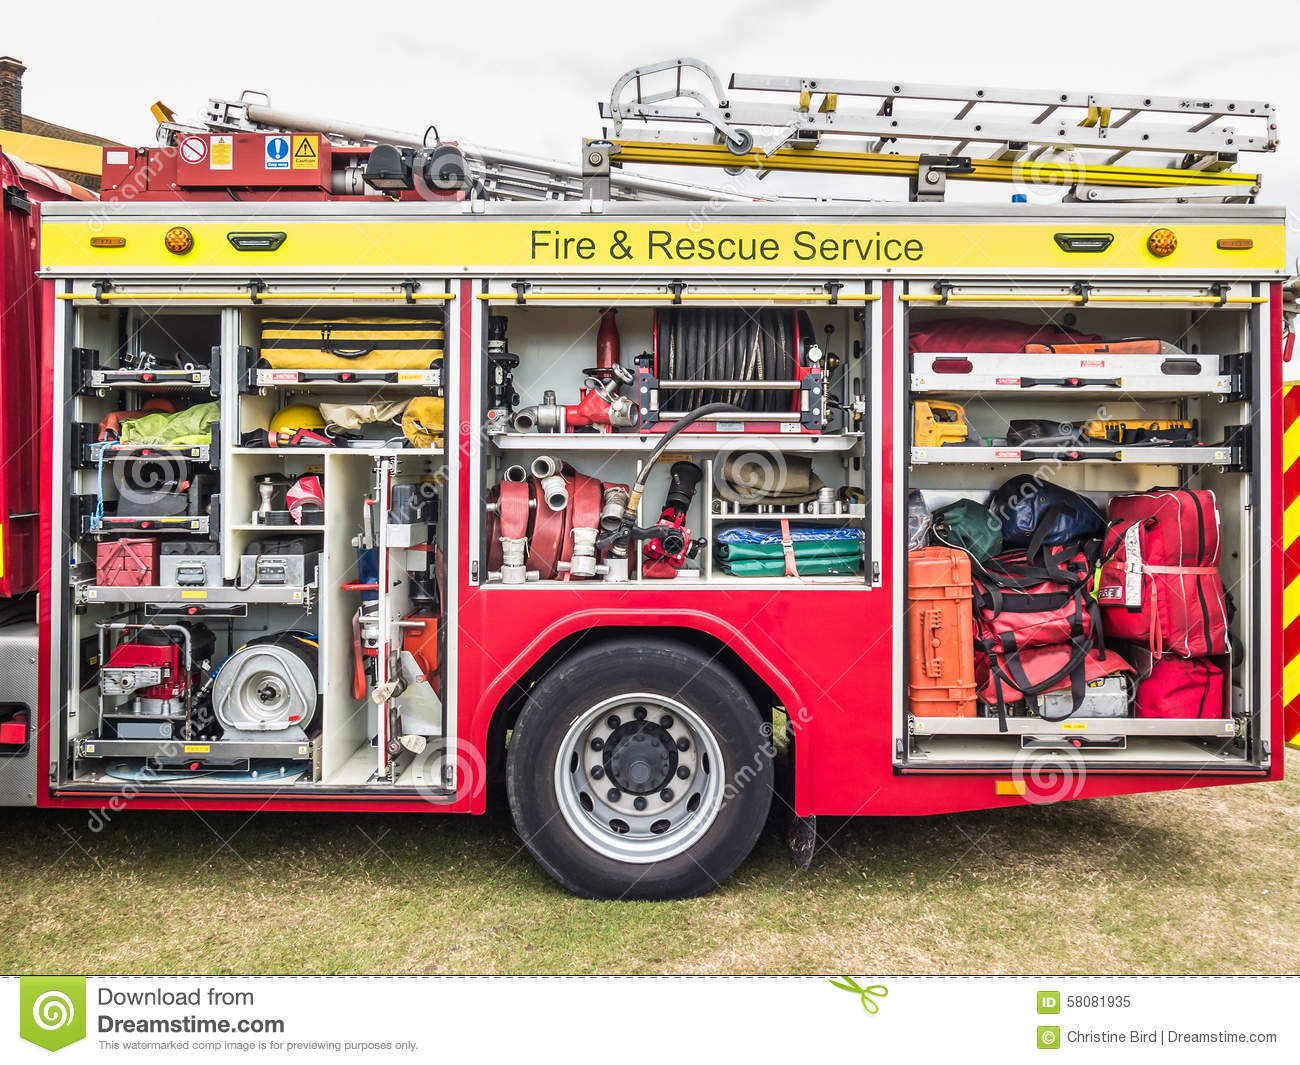 the fire engine - photo #28